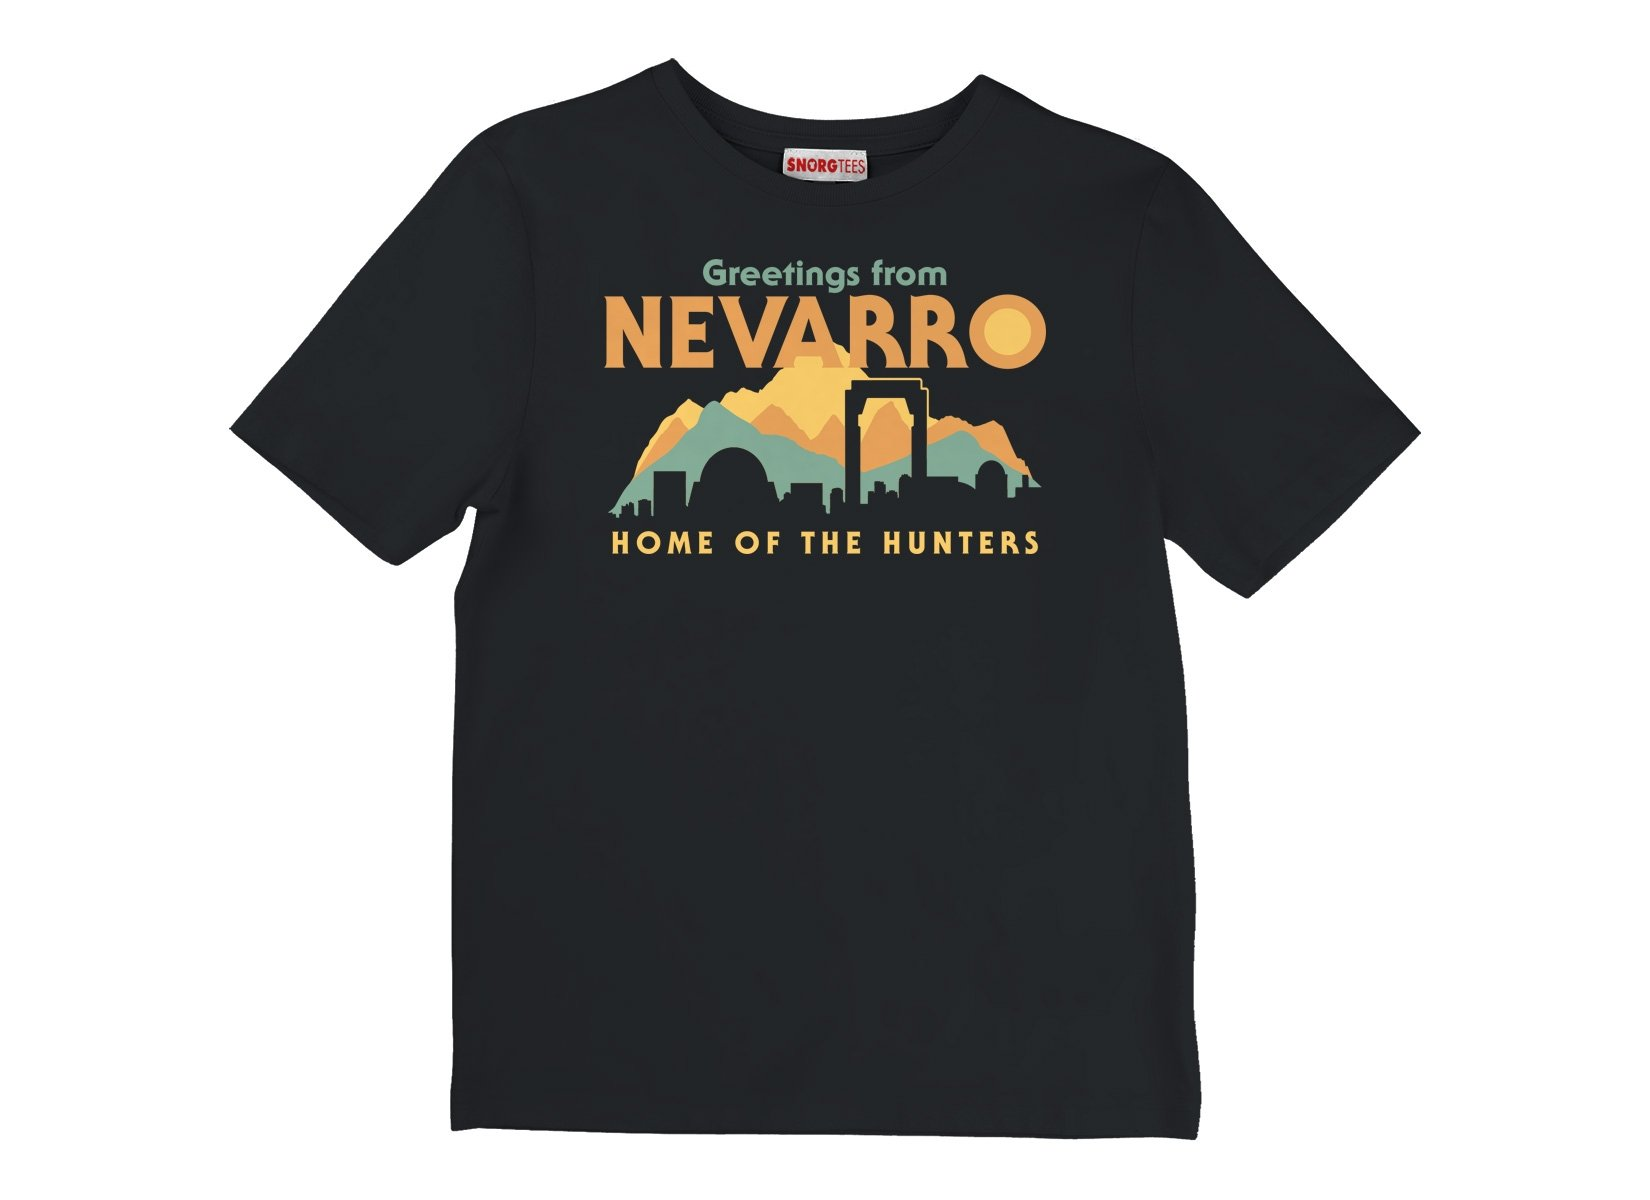 Greetings From Nevarro on Kids T-Shirt